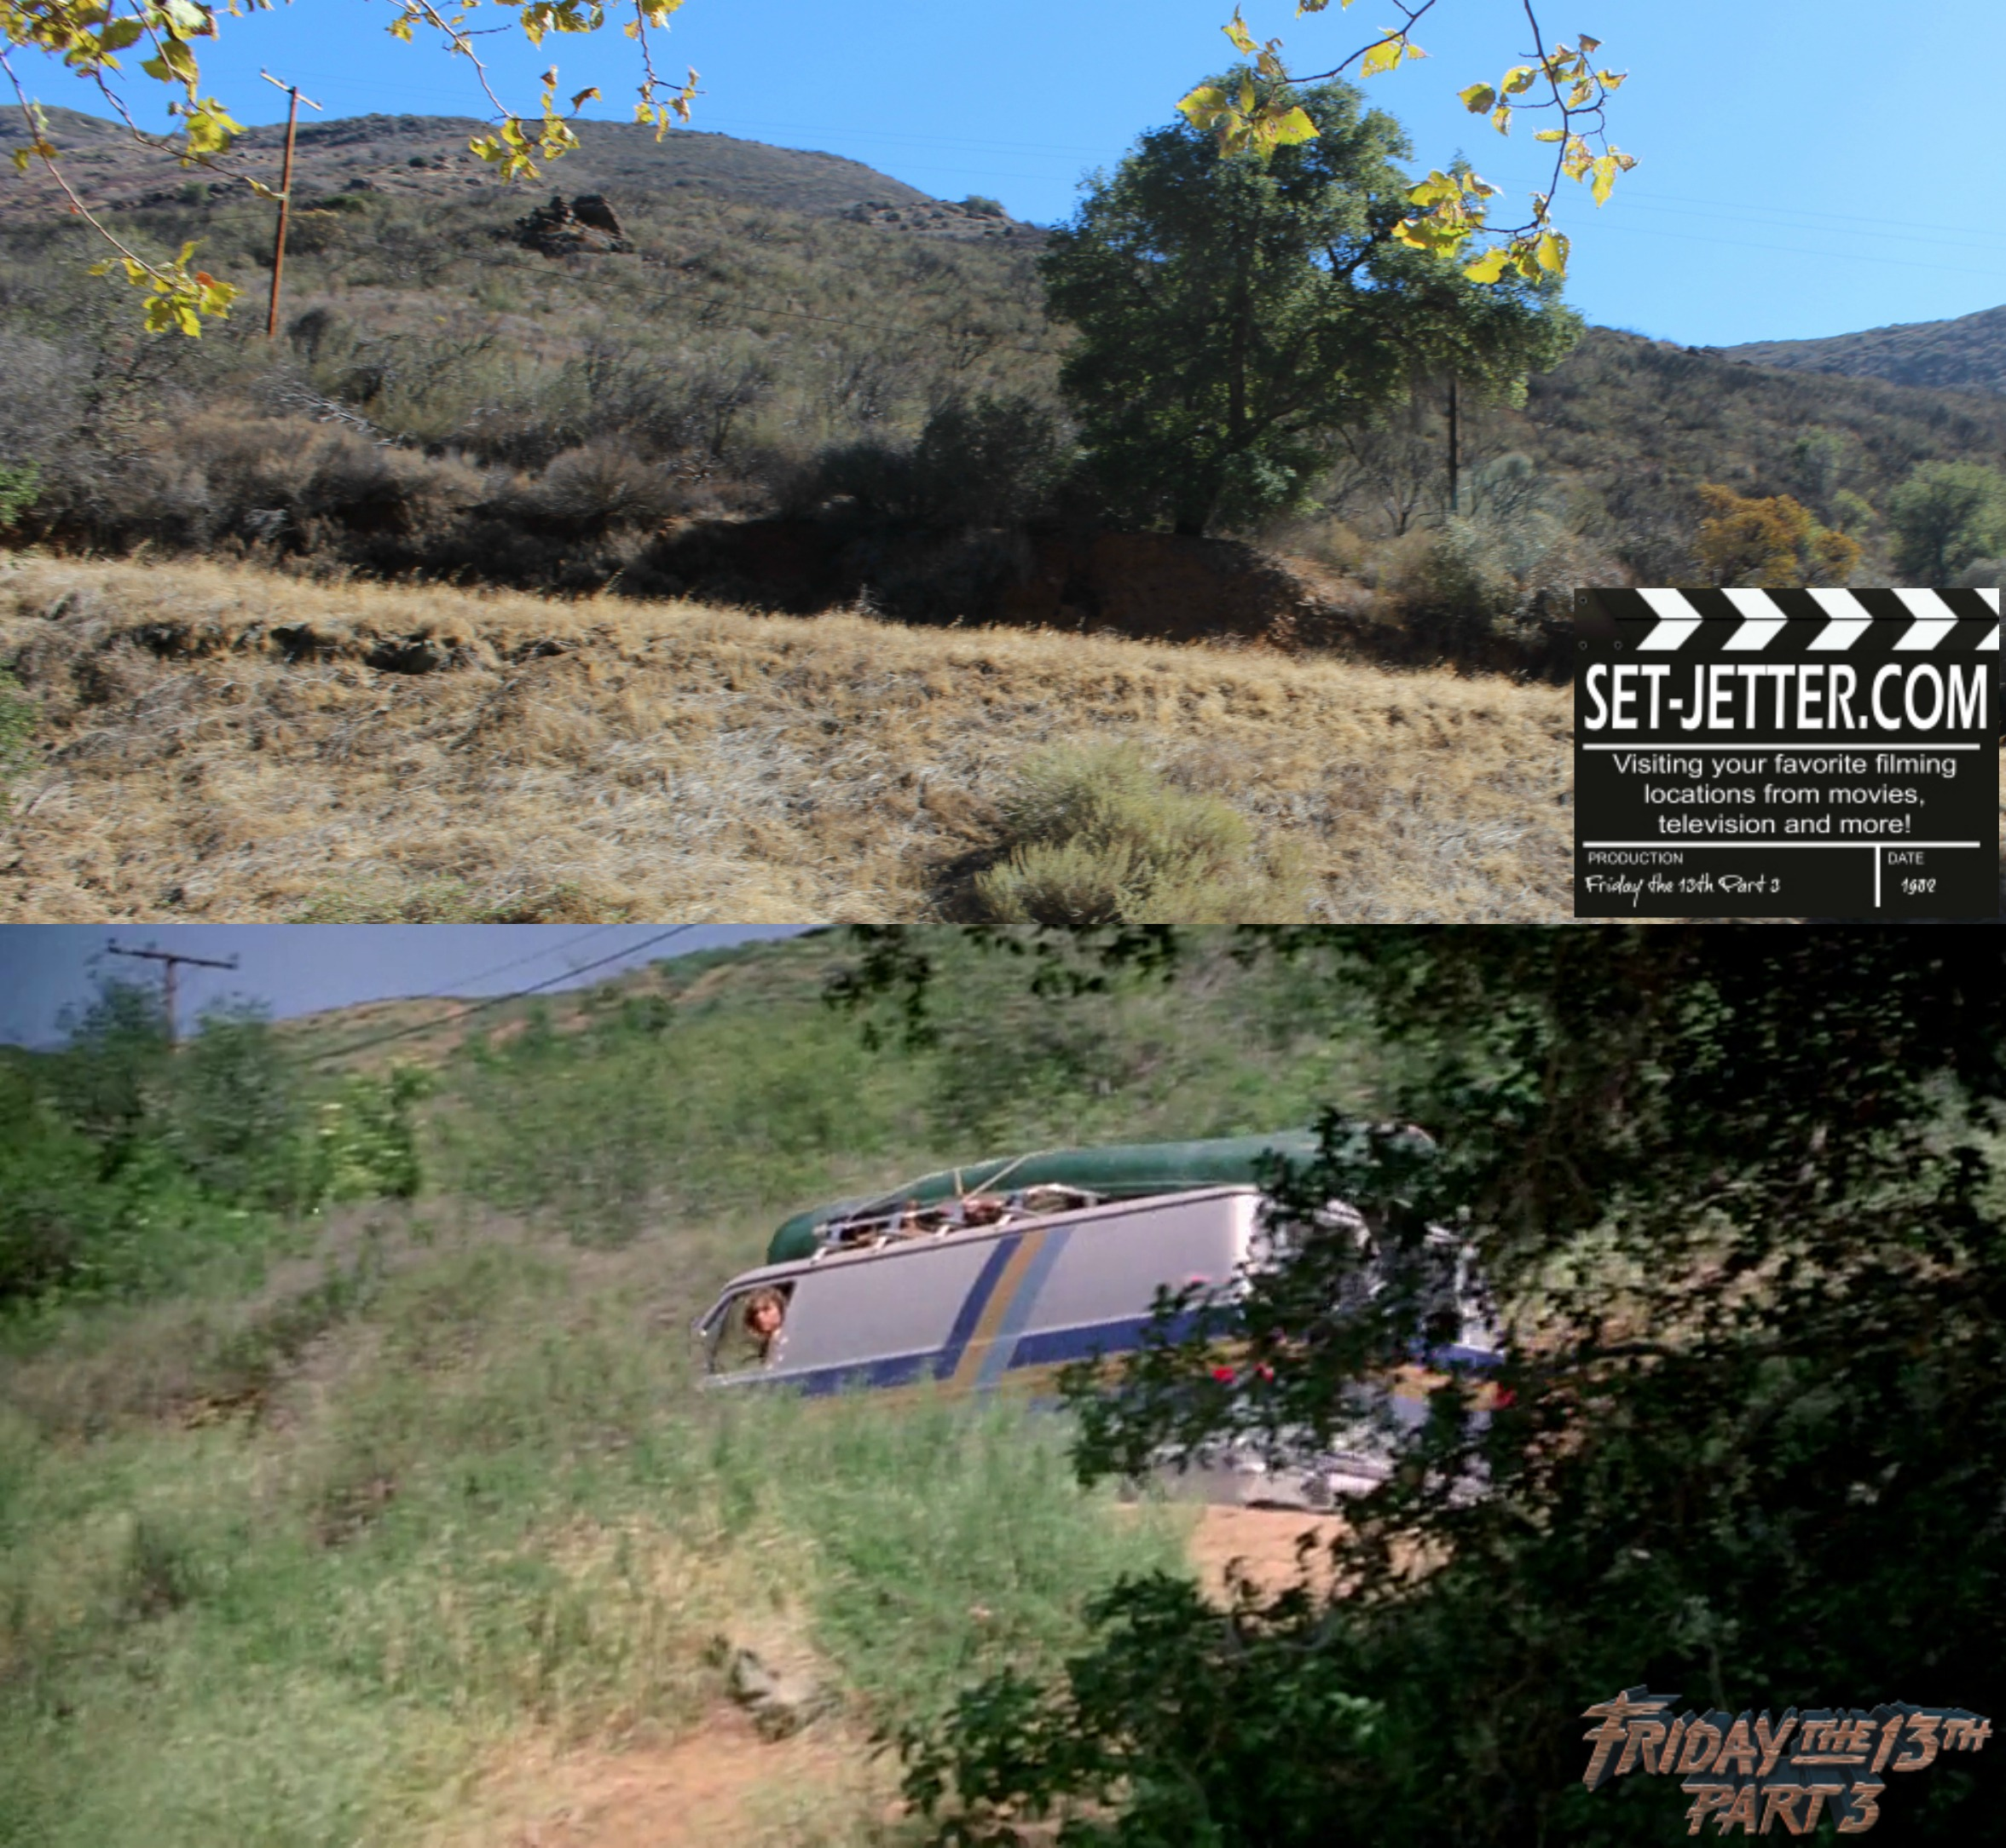 Friday the 13th Part 3 comparison 225.jpg